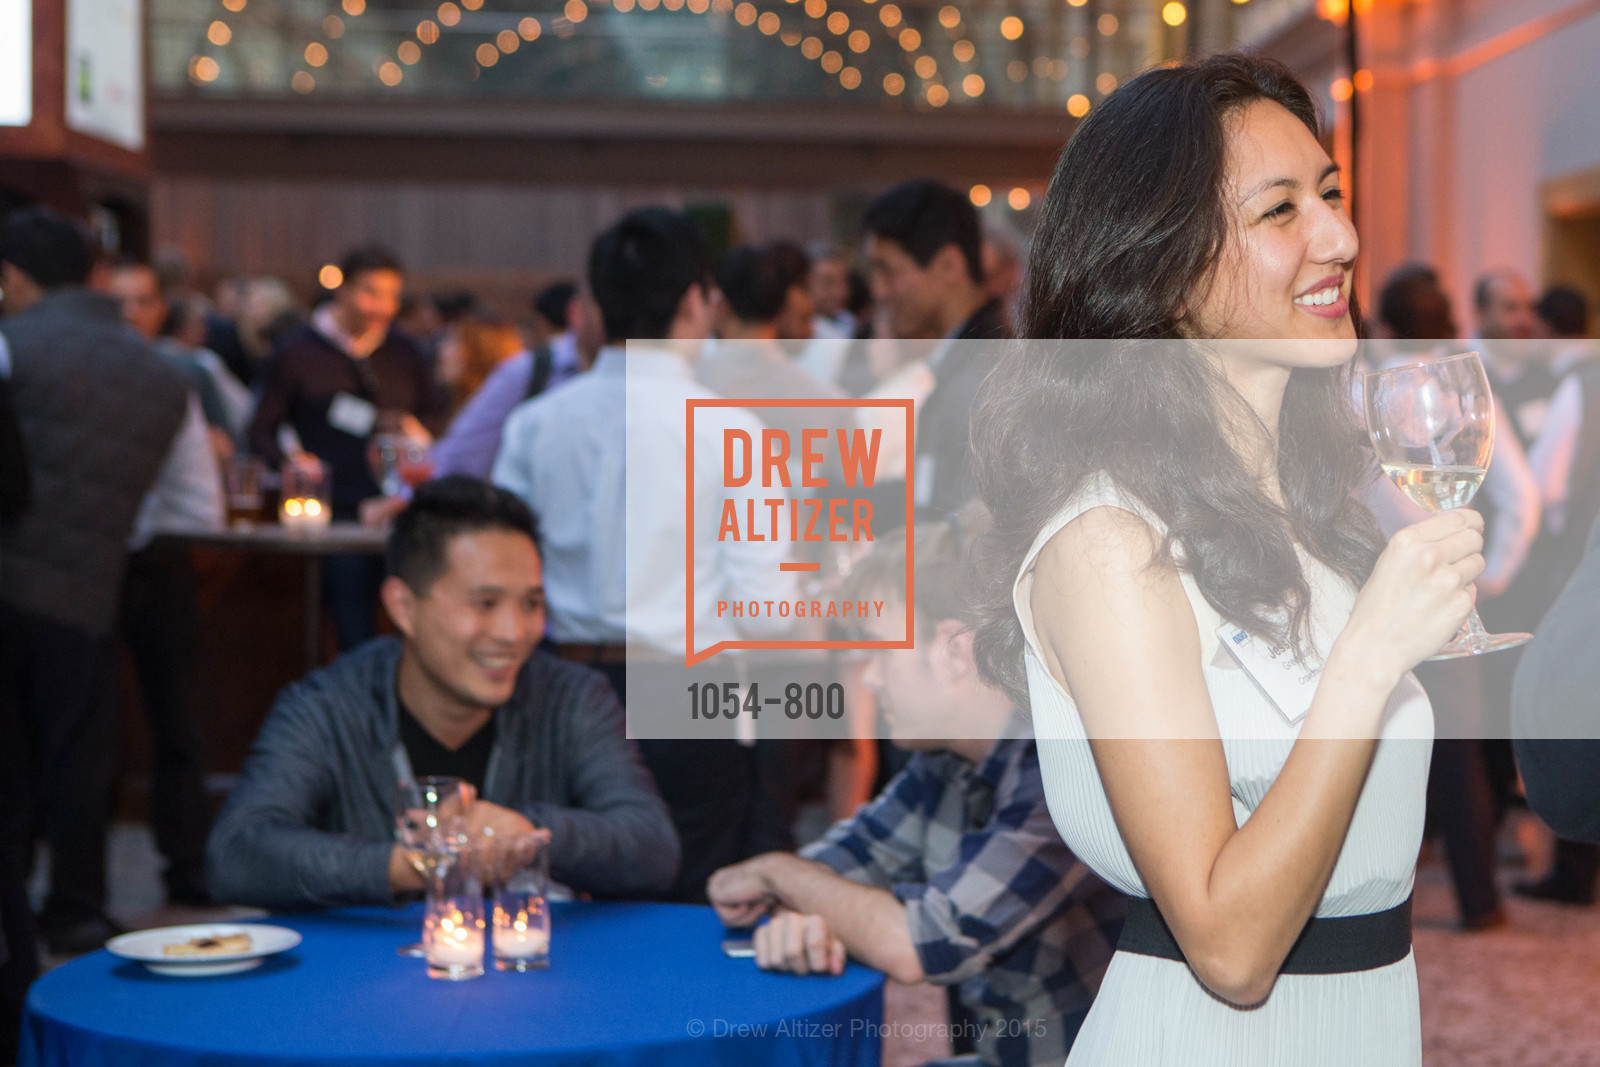 Atmosphere, IVP Spring Party, April 24th, 2015, Photo,Drew Altizer, Drew Altizer Photography, full-service event agency, private events, San Francisco photographer, photographer California